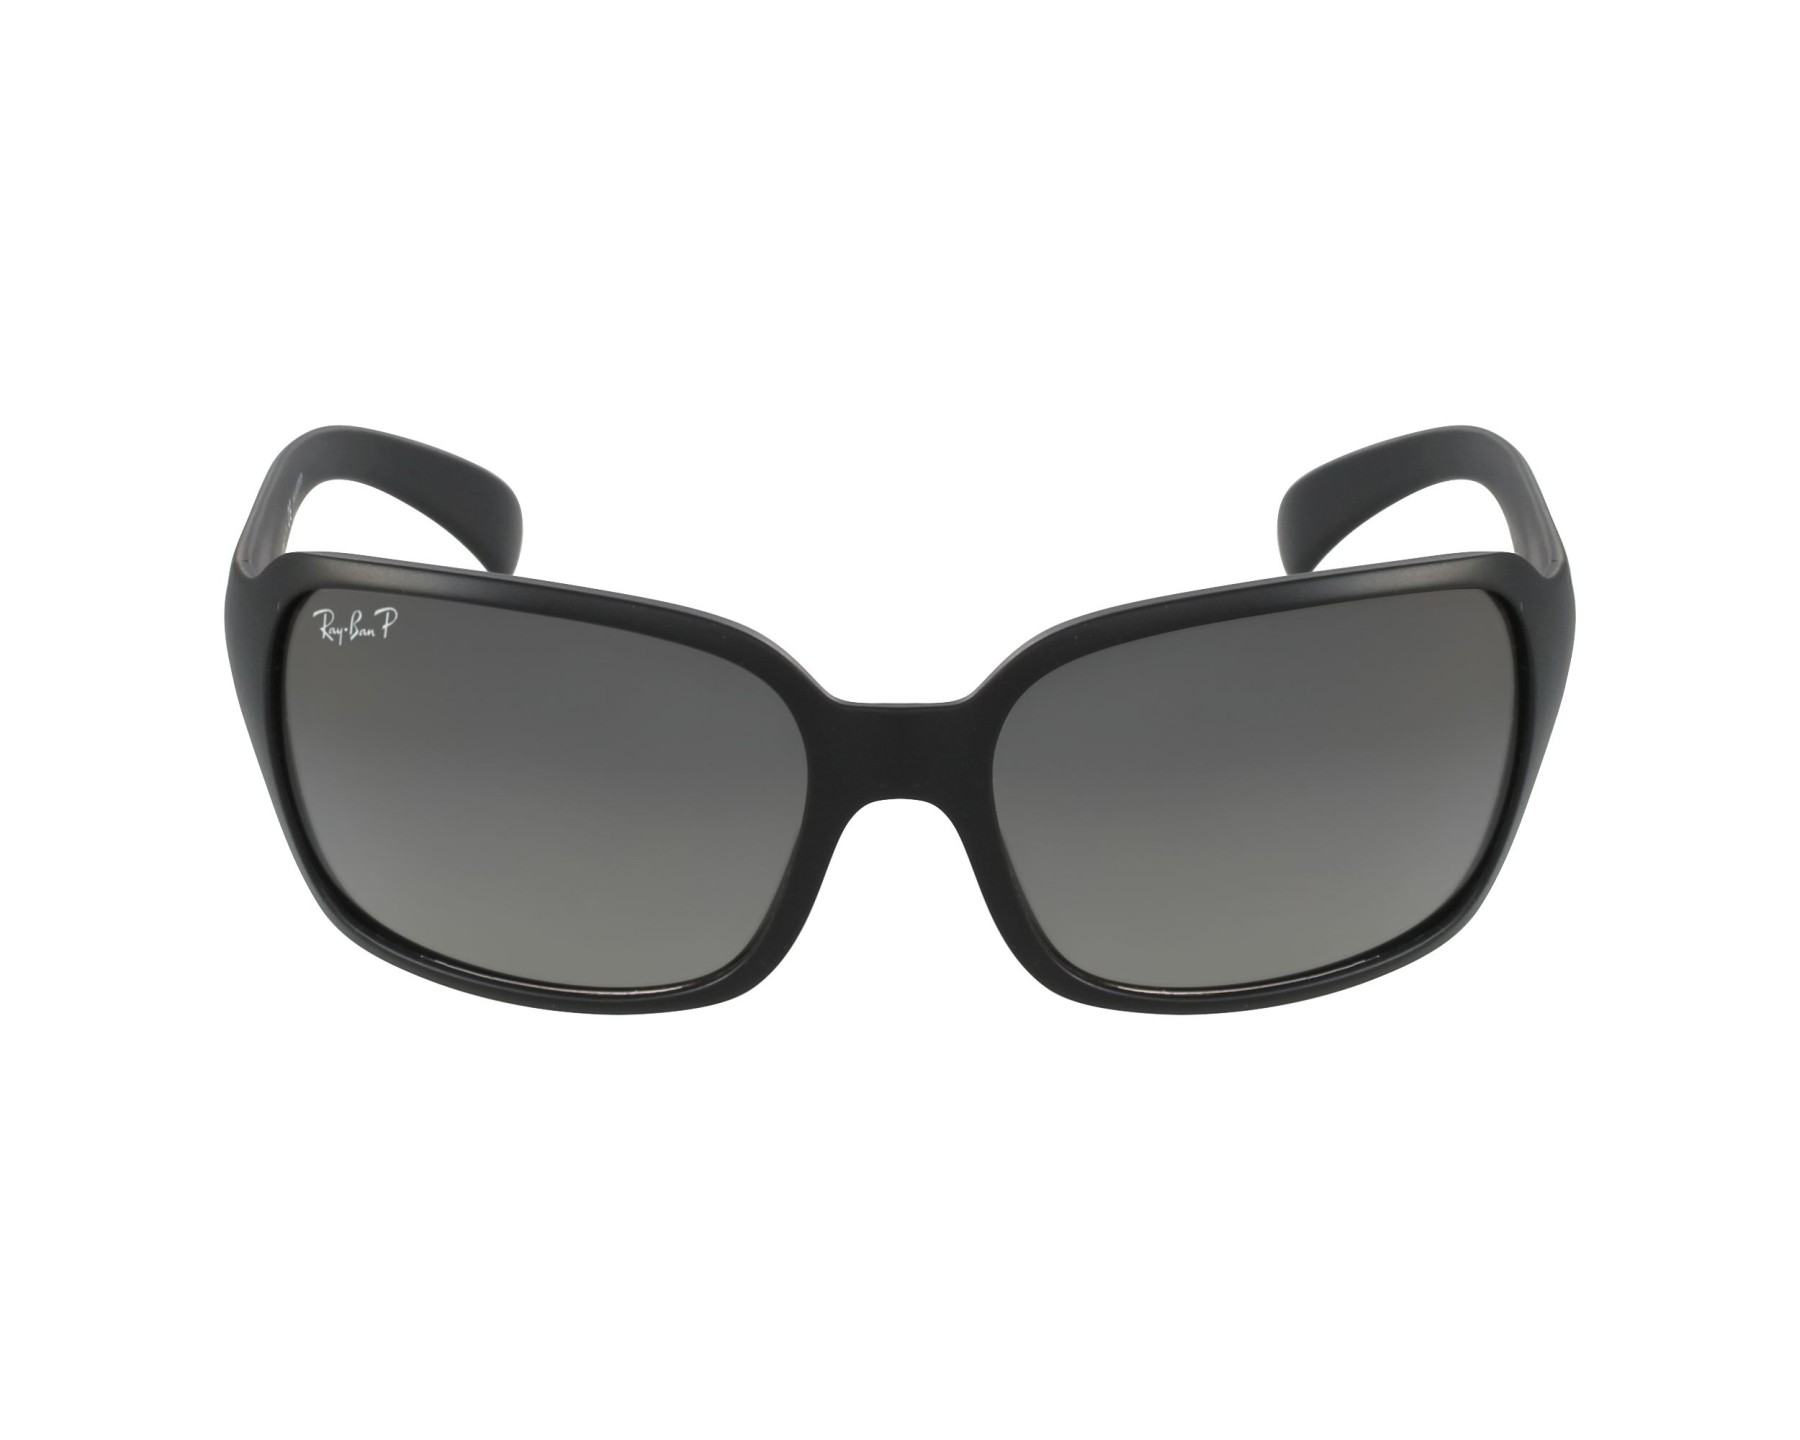 90a1c11d372 Ray-ban 4068 Black 601 60mm - Bitterroot Public Library